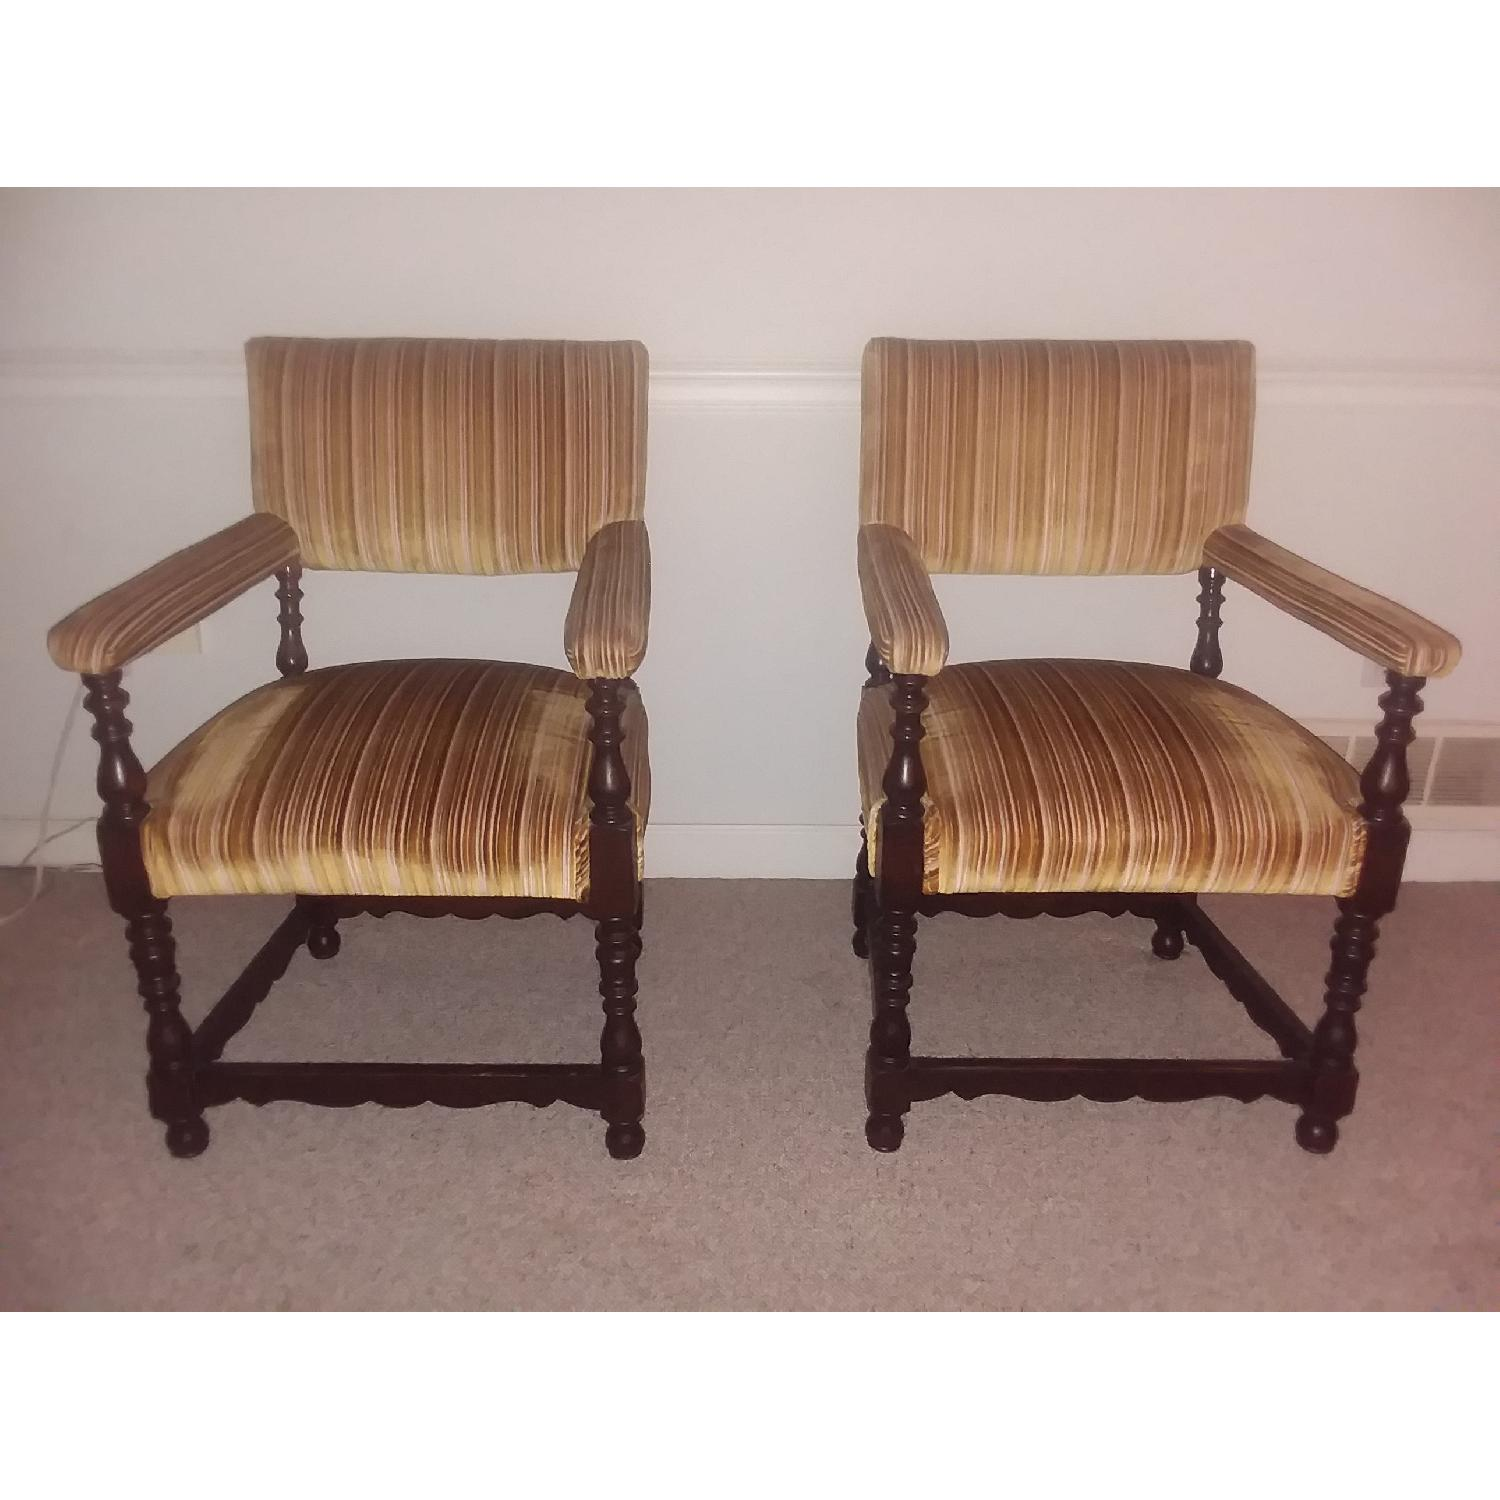 Vintage Provincial Chairs - image-4